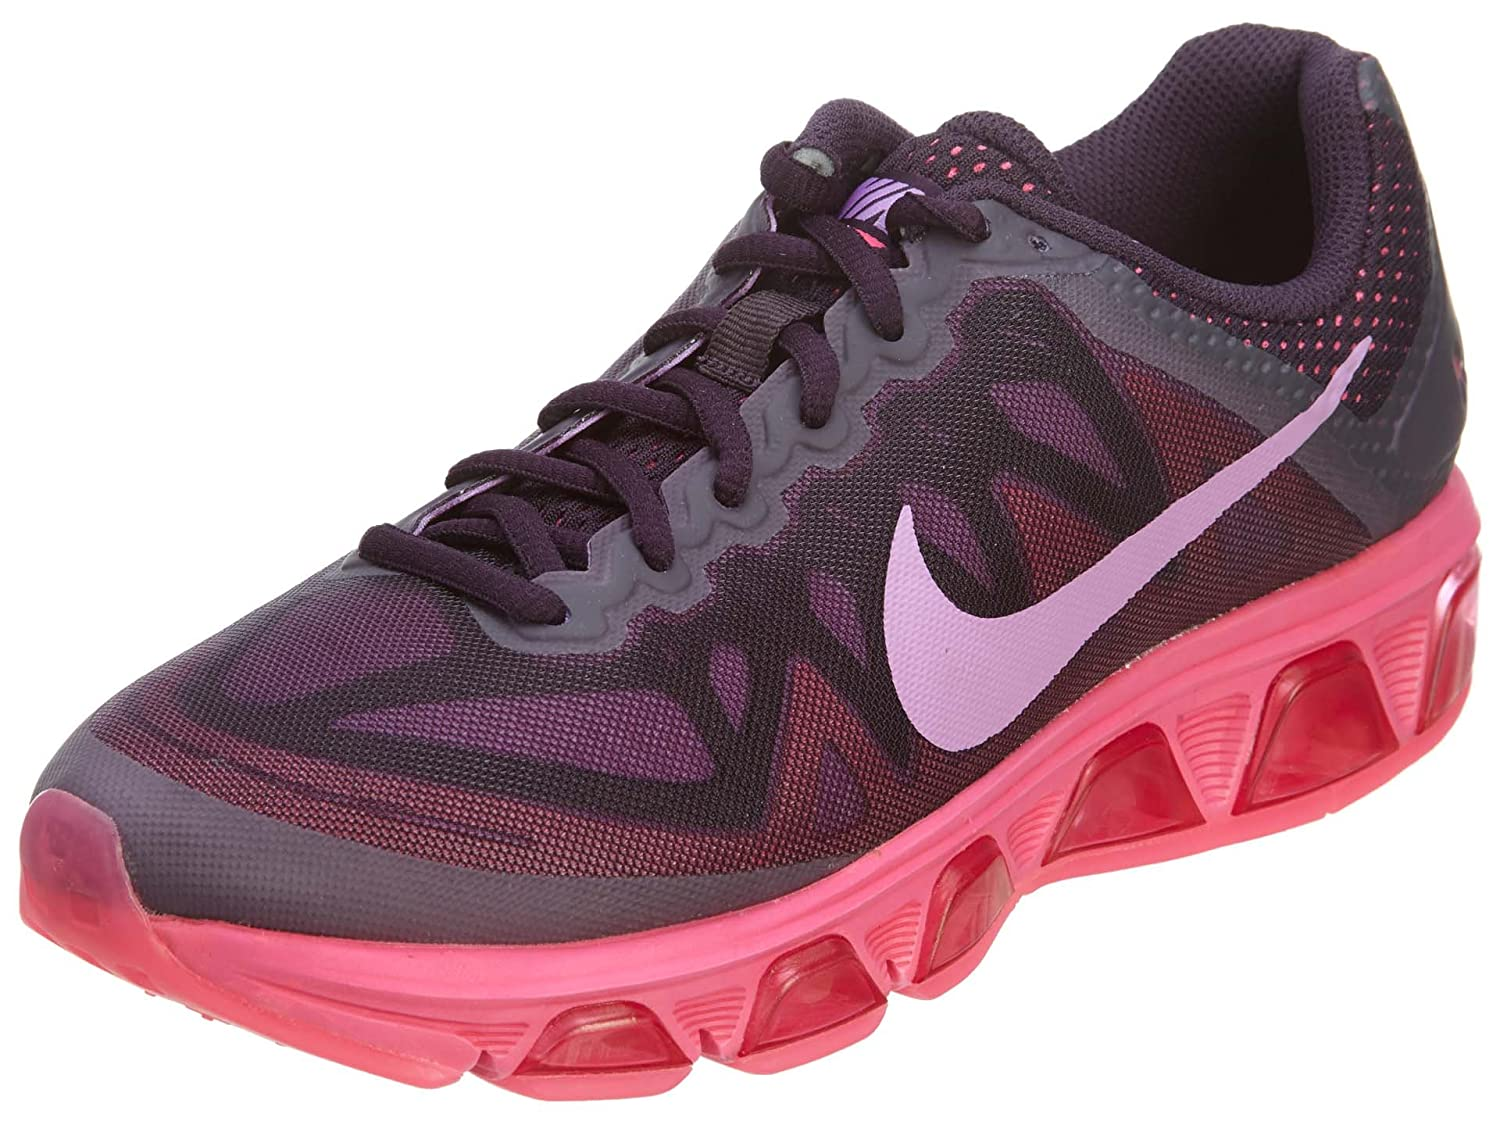 finest selection a228b 8268e Womens Nike Air Max Tailwind 7 Running Shoes Noble Purple pink Pow  683635-505 Size 6.5  Amazon.co.uk  Shoes   Bags